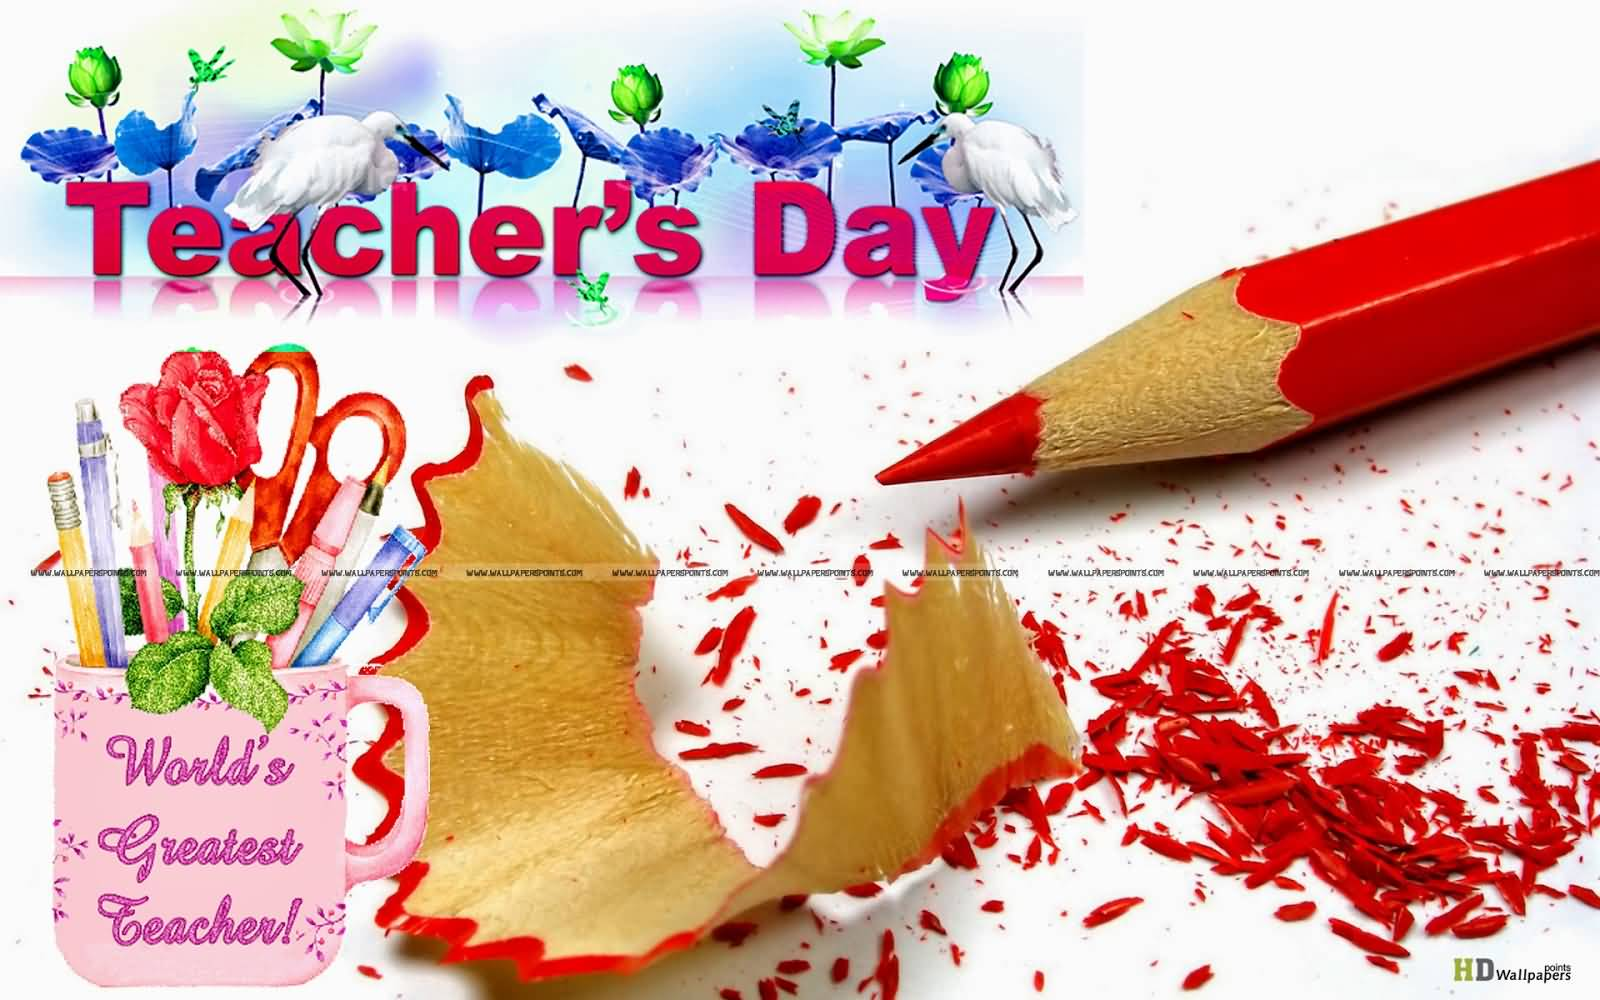 Teachers Day Wishes For Worlds Greatest Teacher 1600x1000